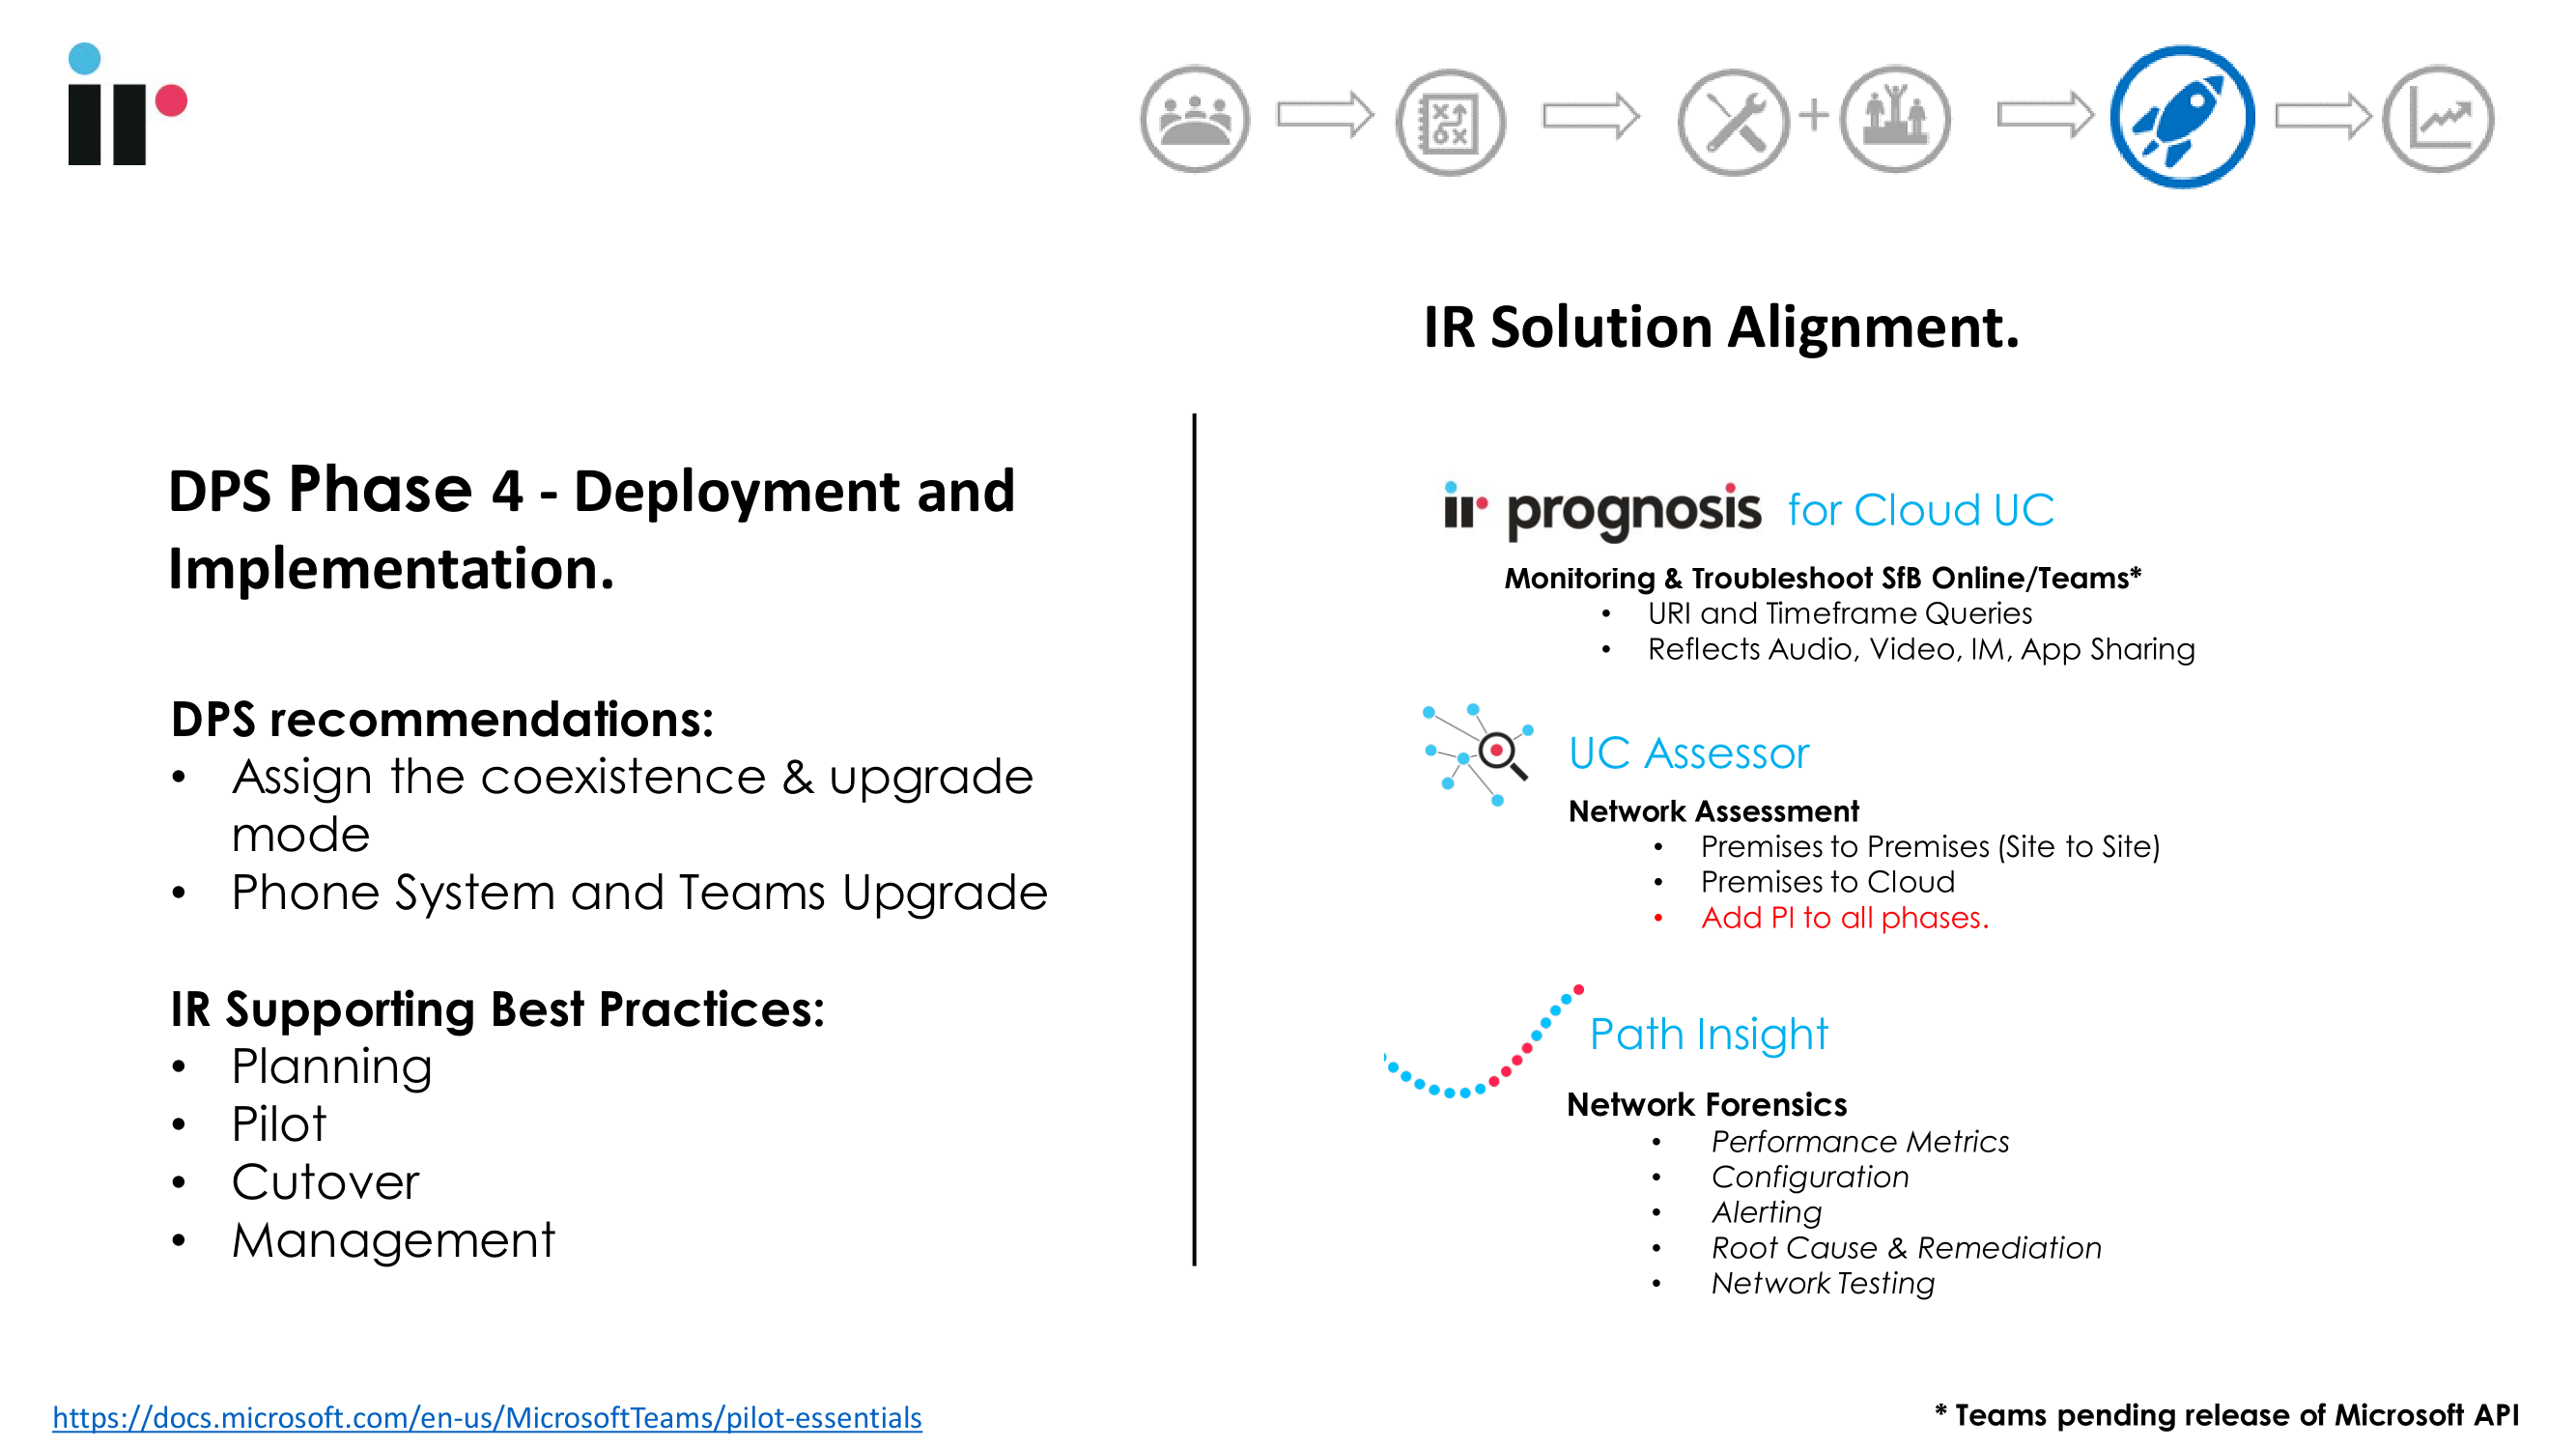 Deployment and Implementation